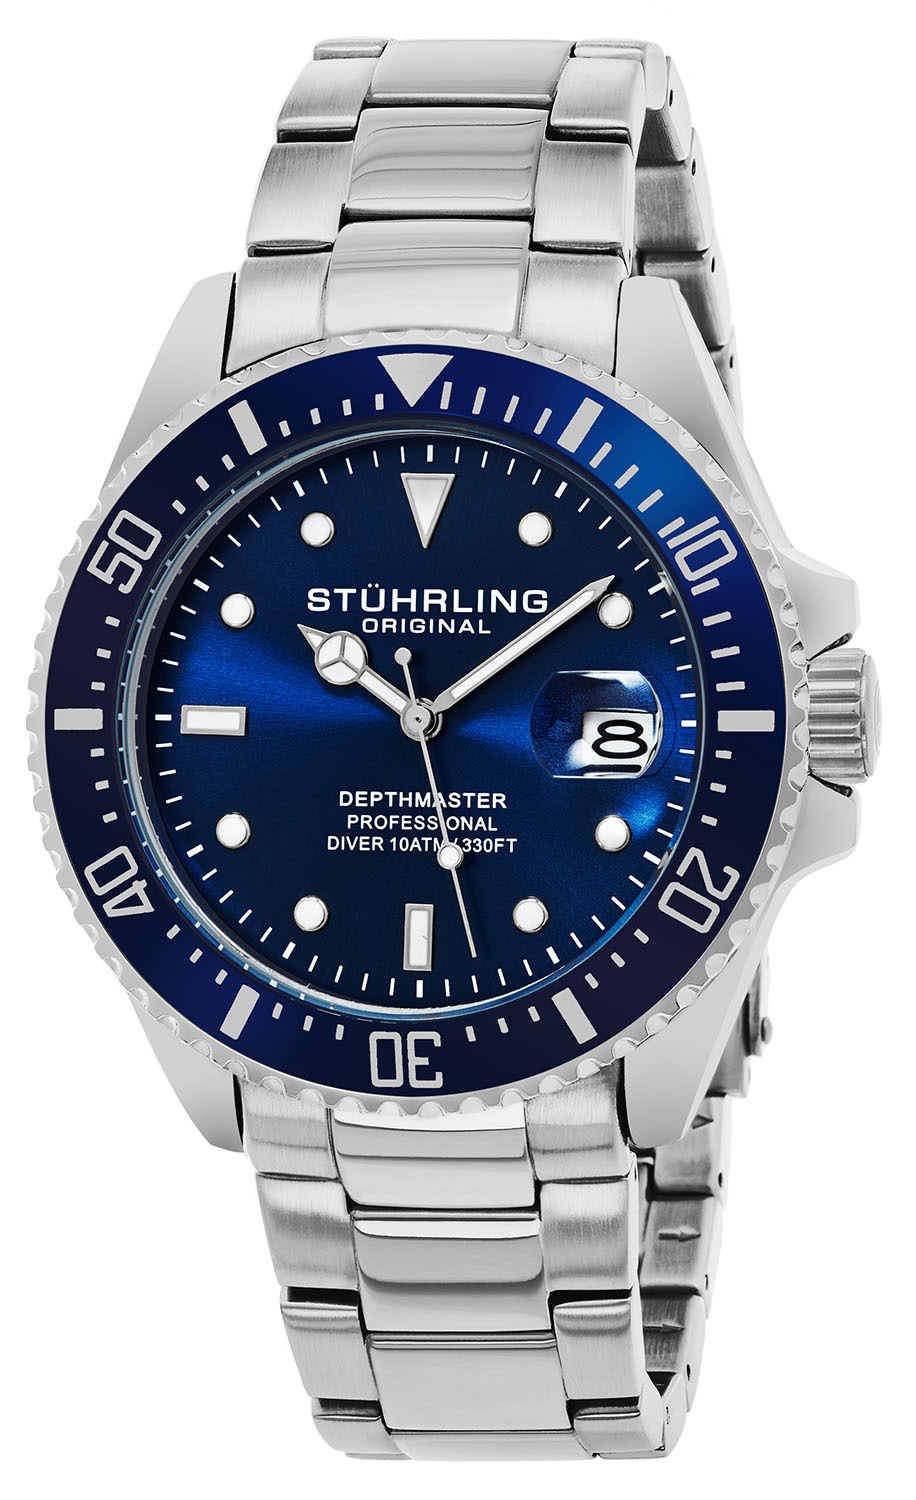 Stührling Original 99999 Herreklokke 3950.2 Grå/Stål Ø46 mm - Stührling Original